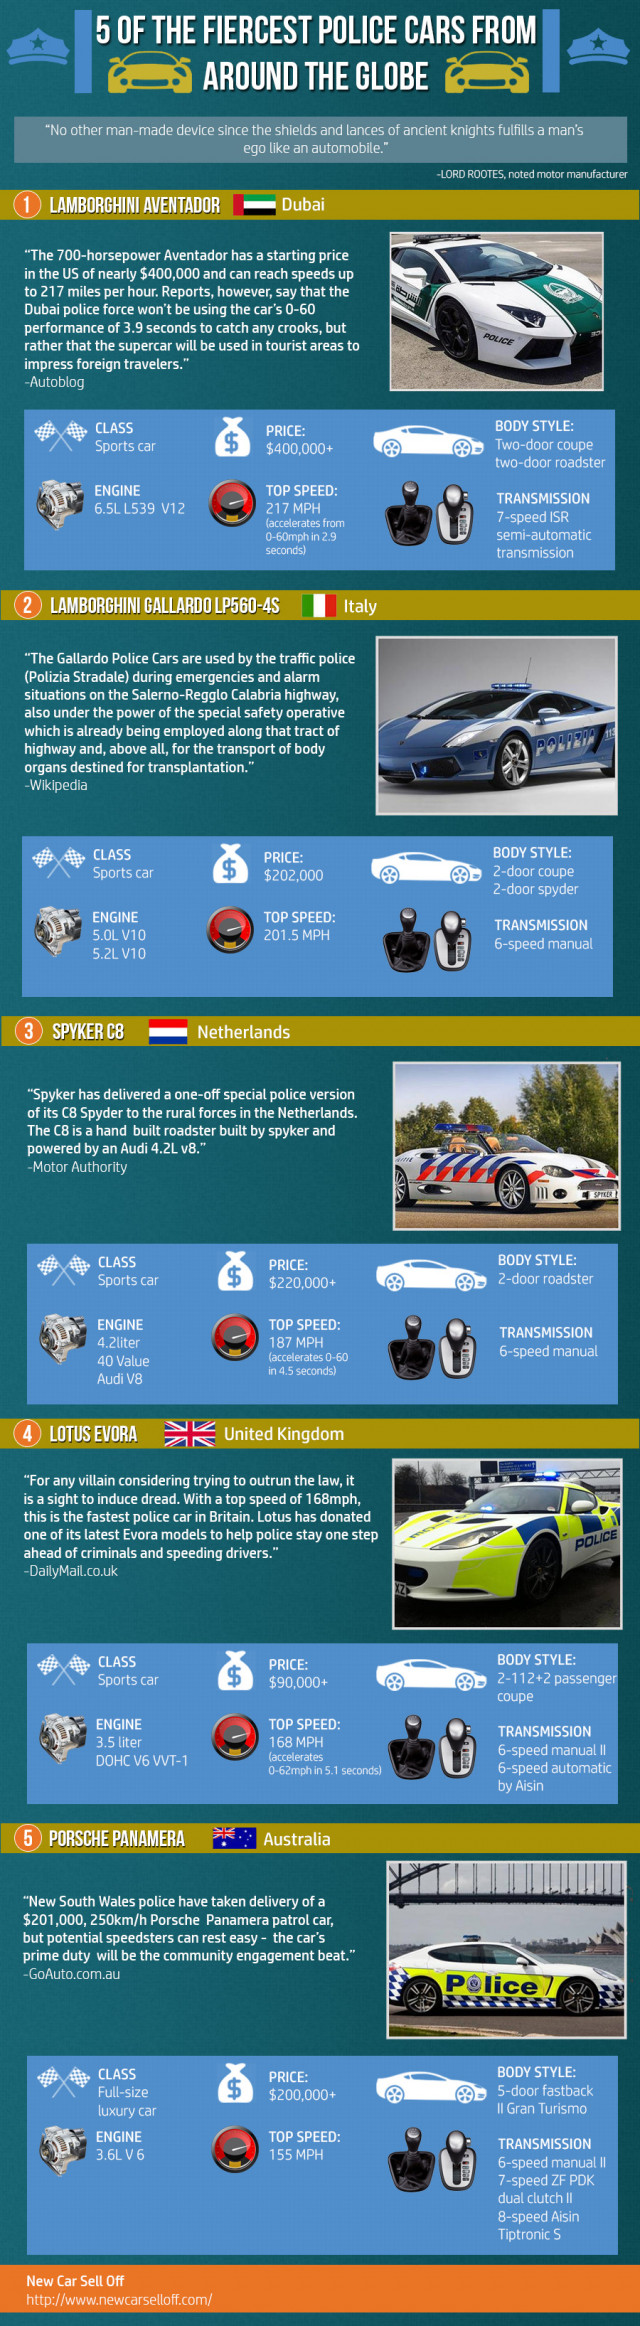 Infographic: 5 of the Fiercest Police Cars from Around Globe